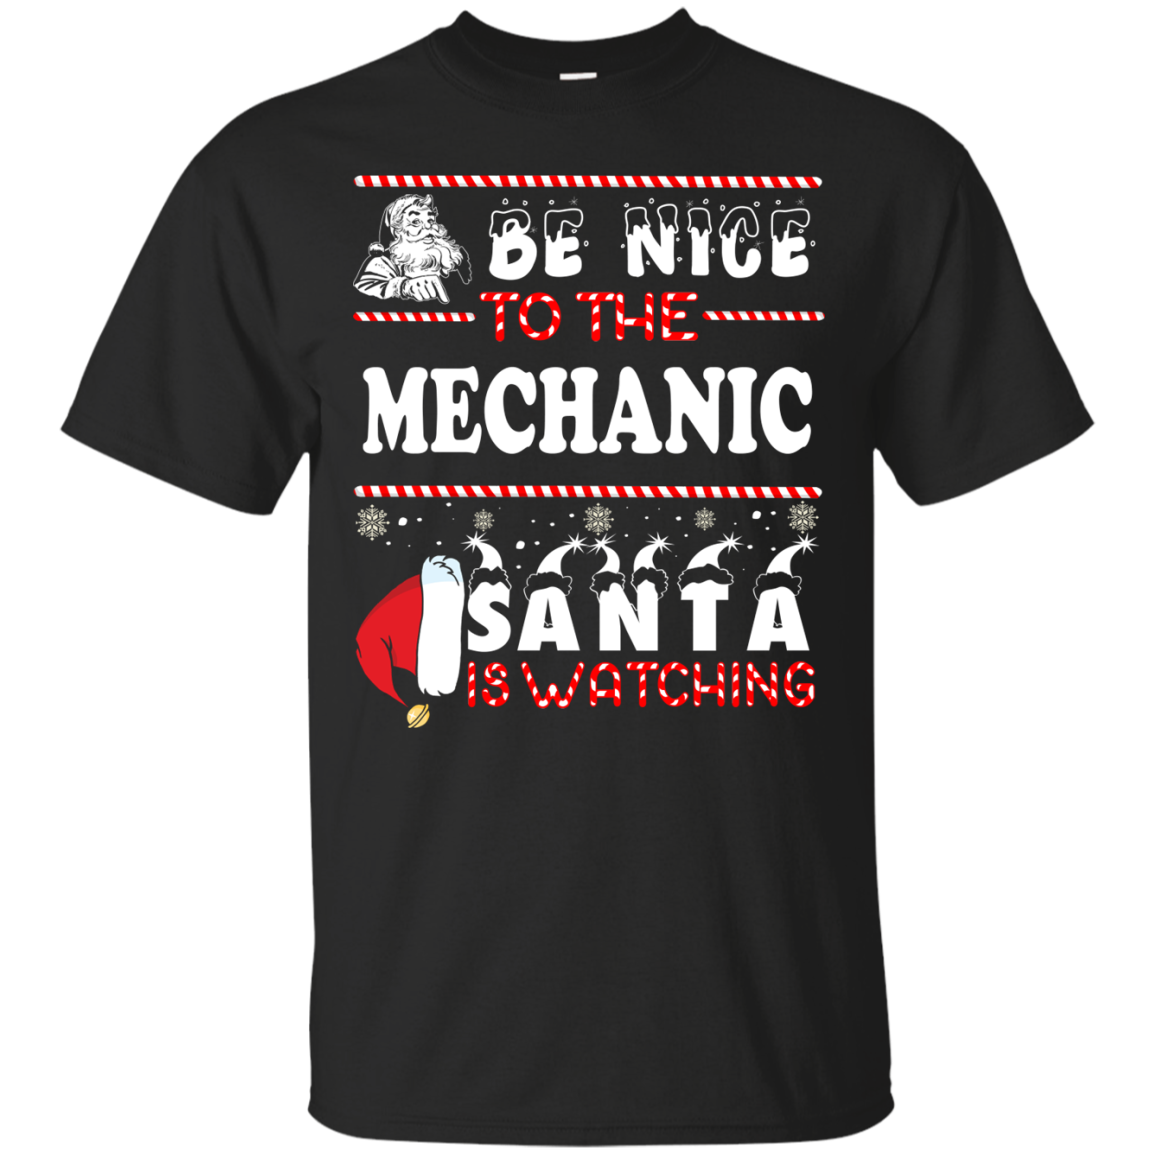 Be Nice To The Mechanic Santa Is Watching Sweatshirt, T-Shirt